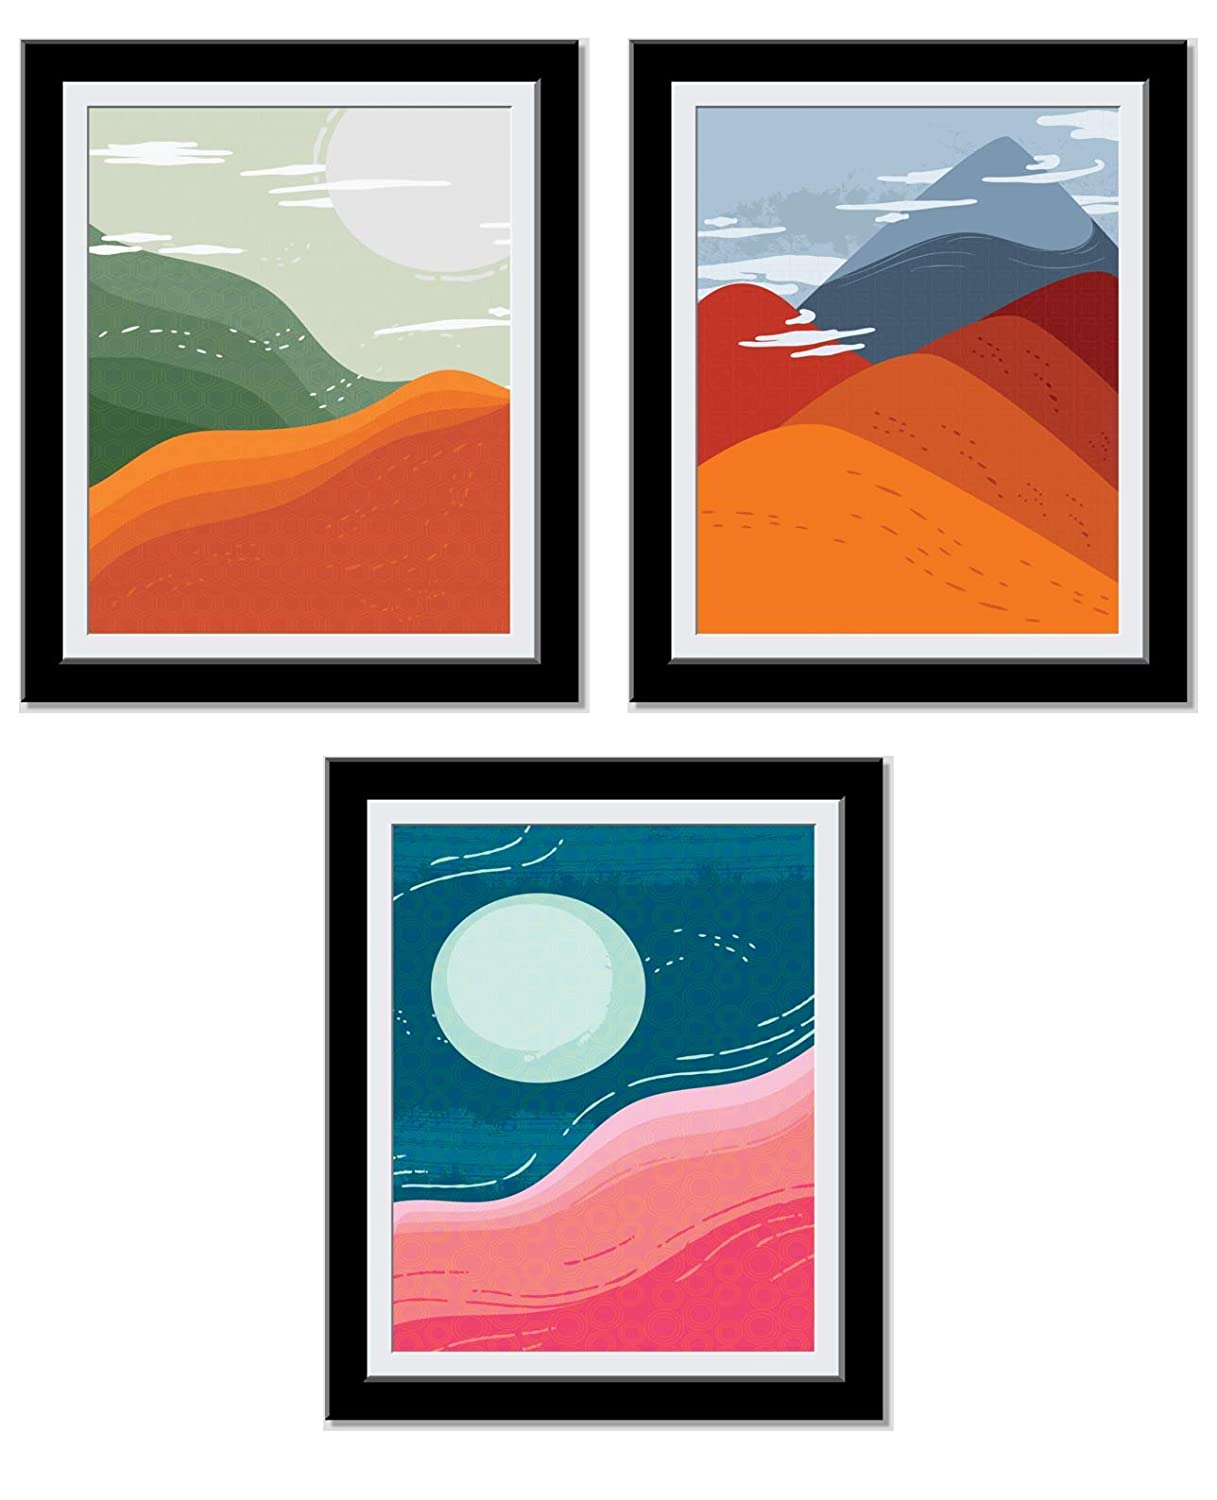 Mountain Dunes Minimalistic - Posters For Room Aesthetic - Abstract Art - Chic Minimalist Decor - Cute, Trendy Art Prints - House warming, Anniversary Gifts For Her - 8X10 Unframed…